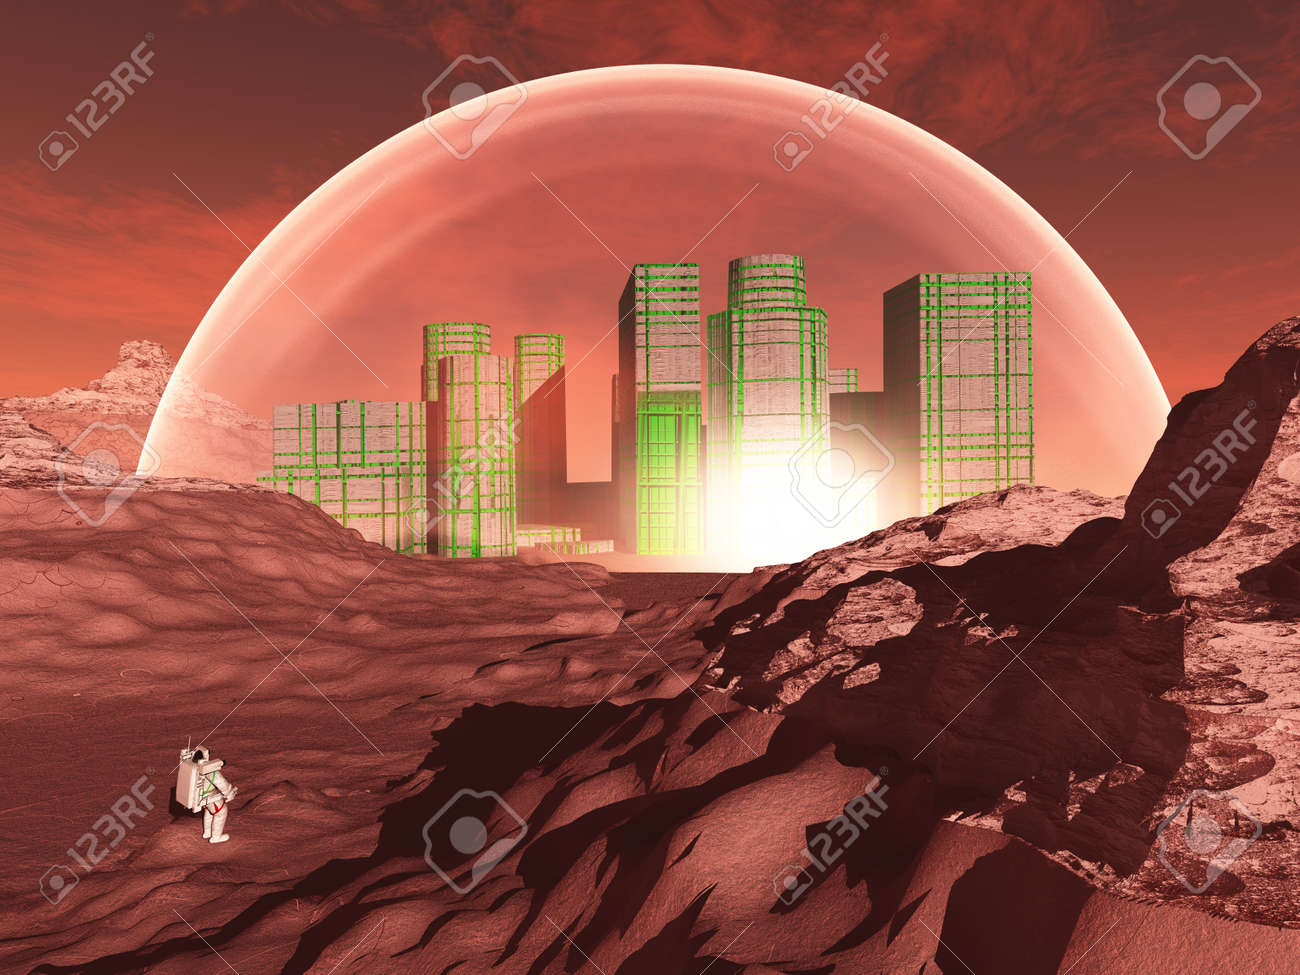 Domed city in inhospitable planet perhaps mars Stock Photo - 15488701